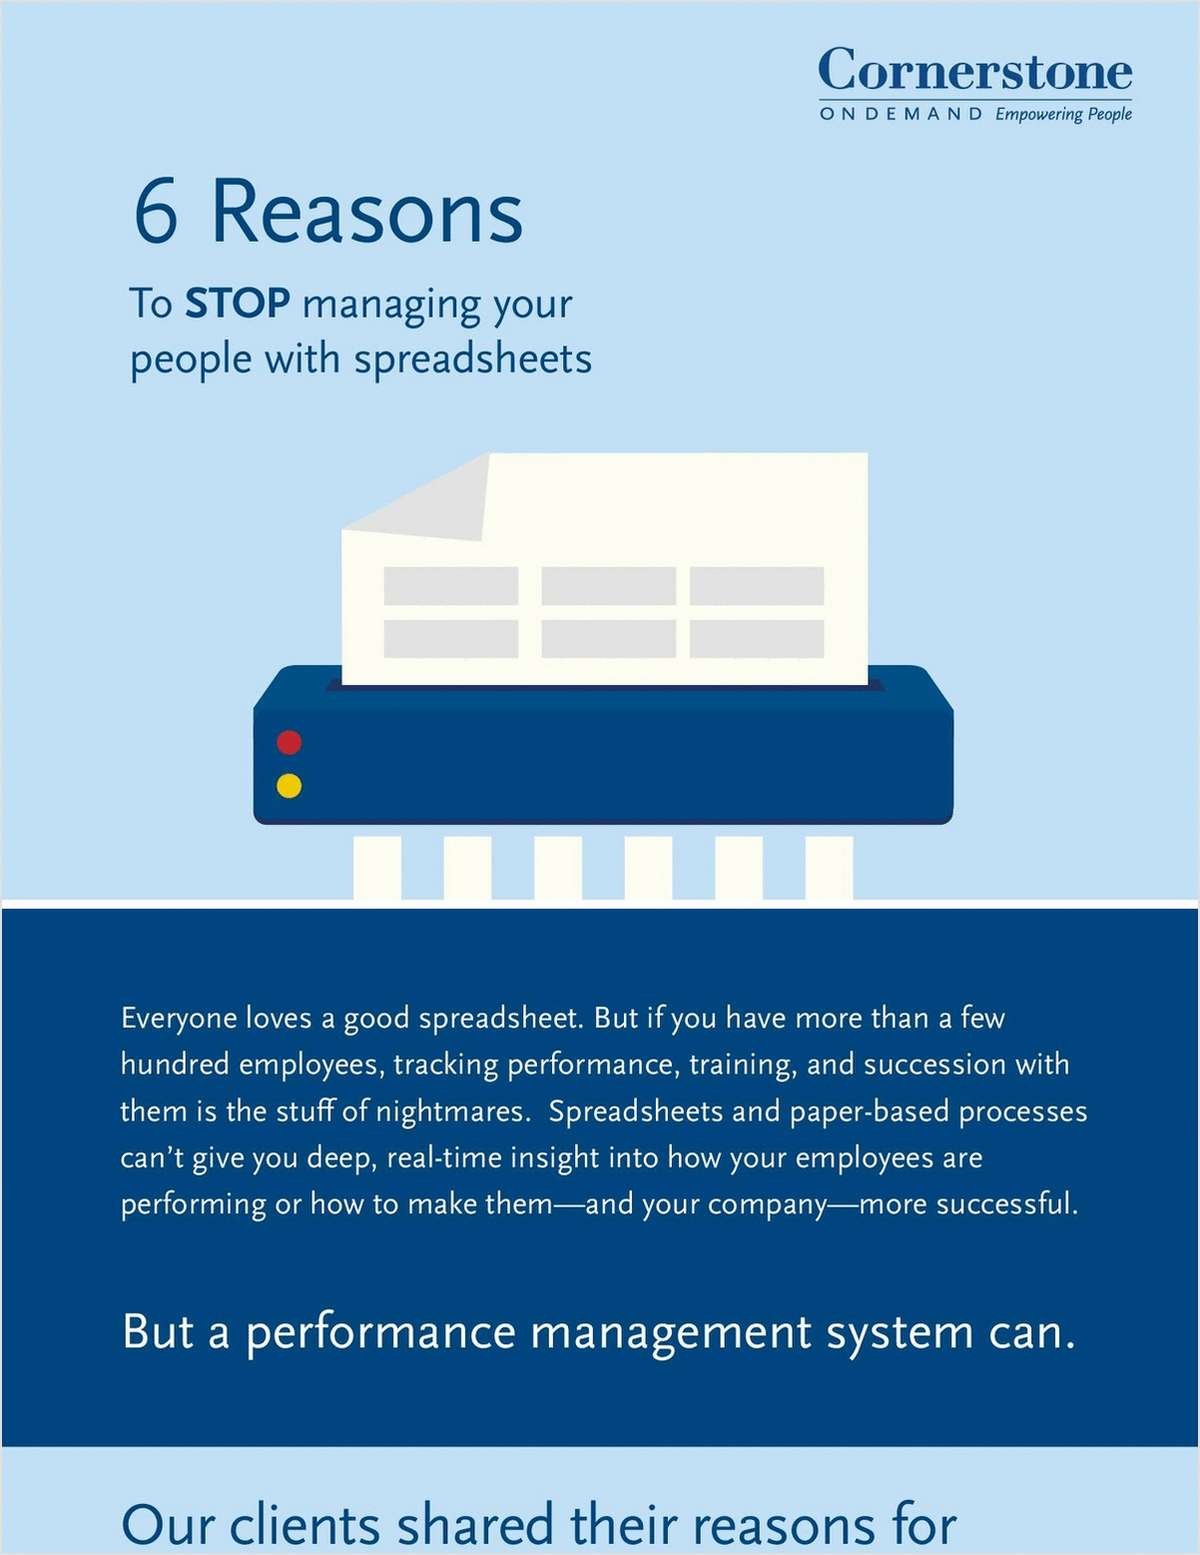 6 Reasons to Stop Managing Your People with Spreadsheets